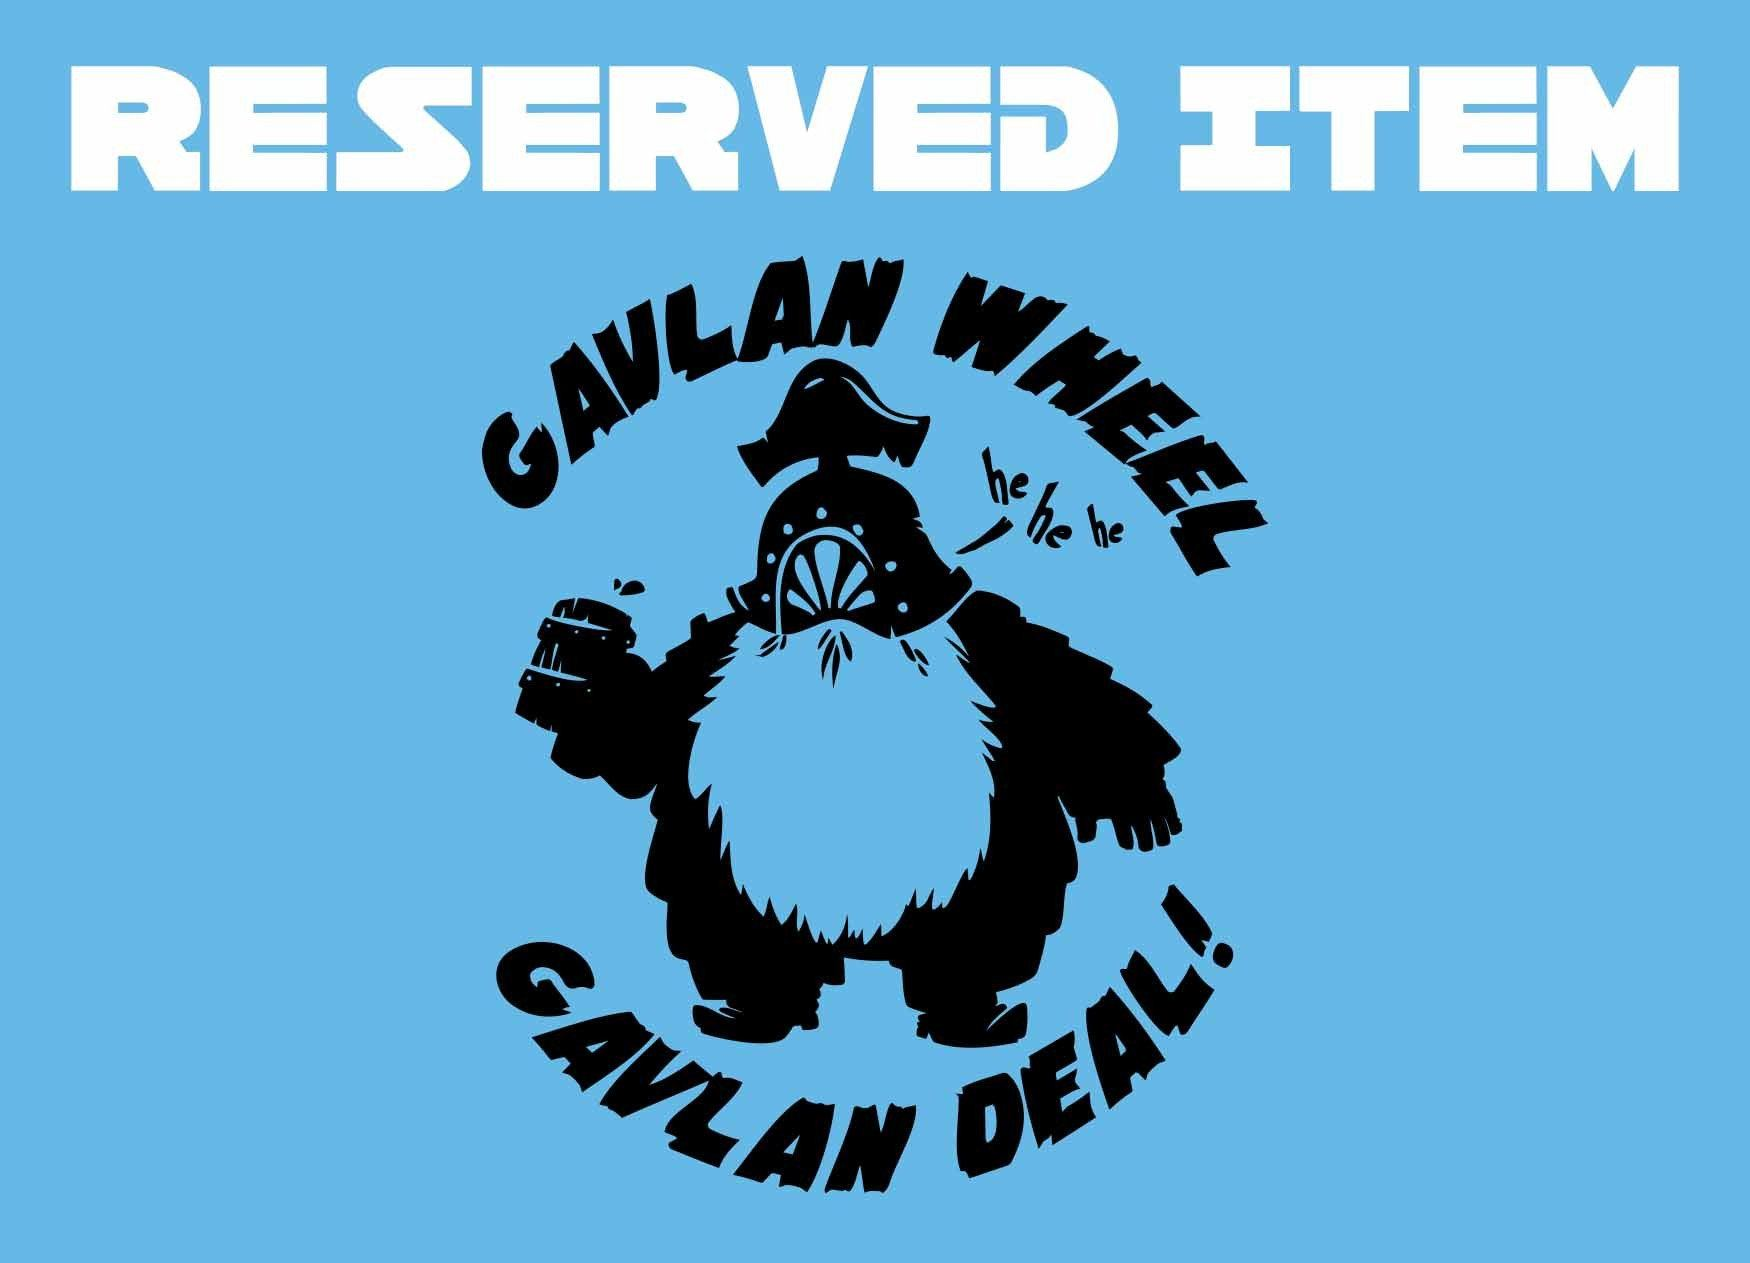 Reserved Item - Crowsmack - Dark Souls Gavlan Wheel Gavlan Deal